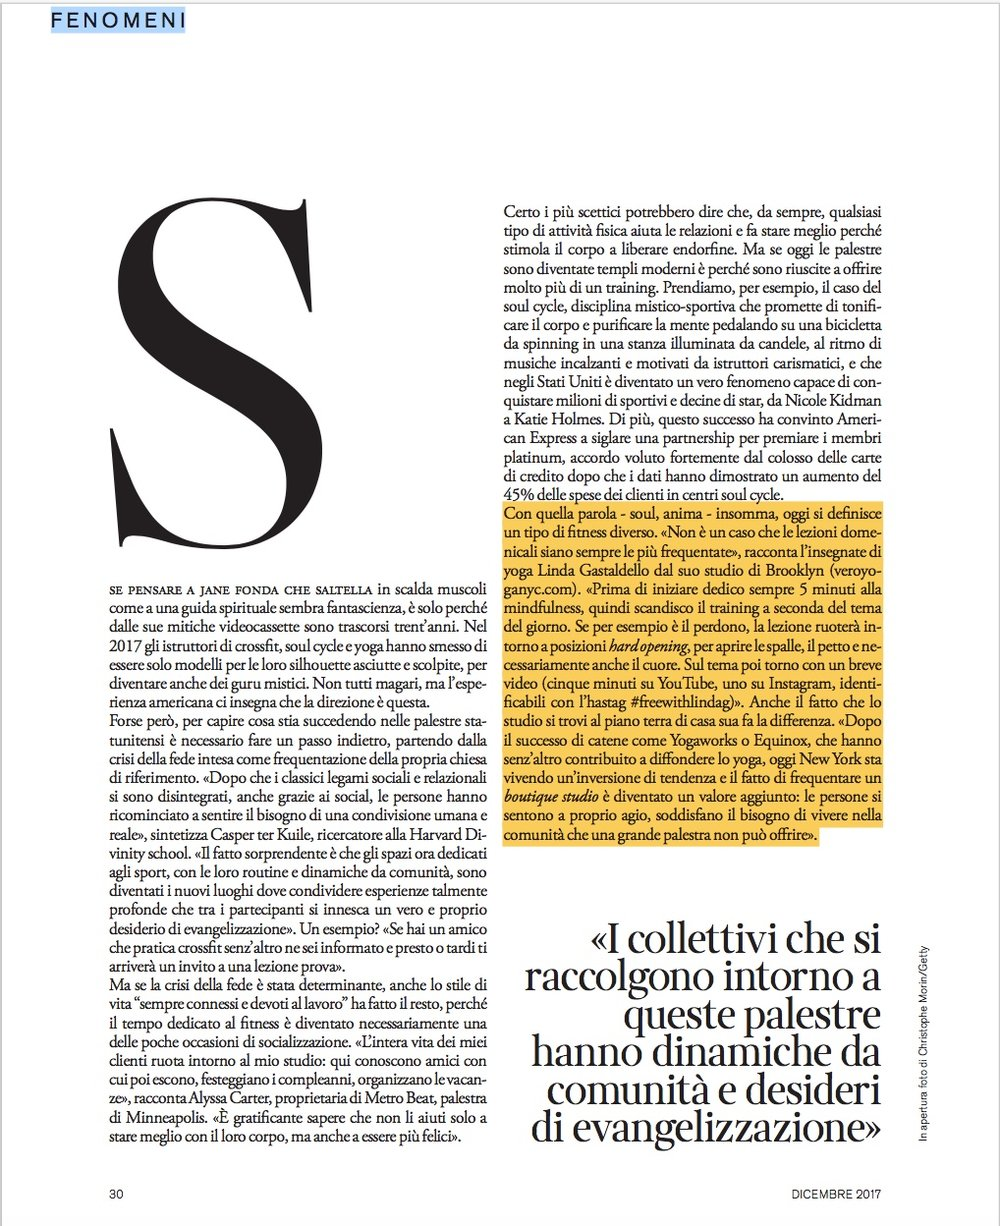 D Repubblica article